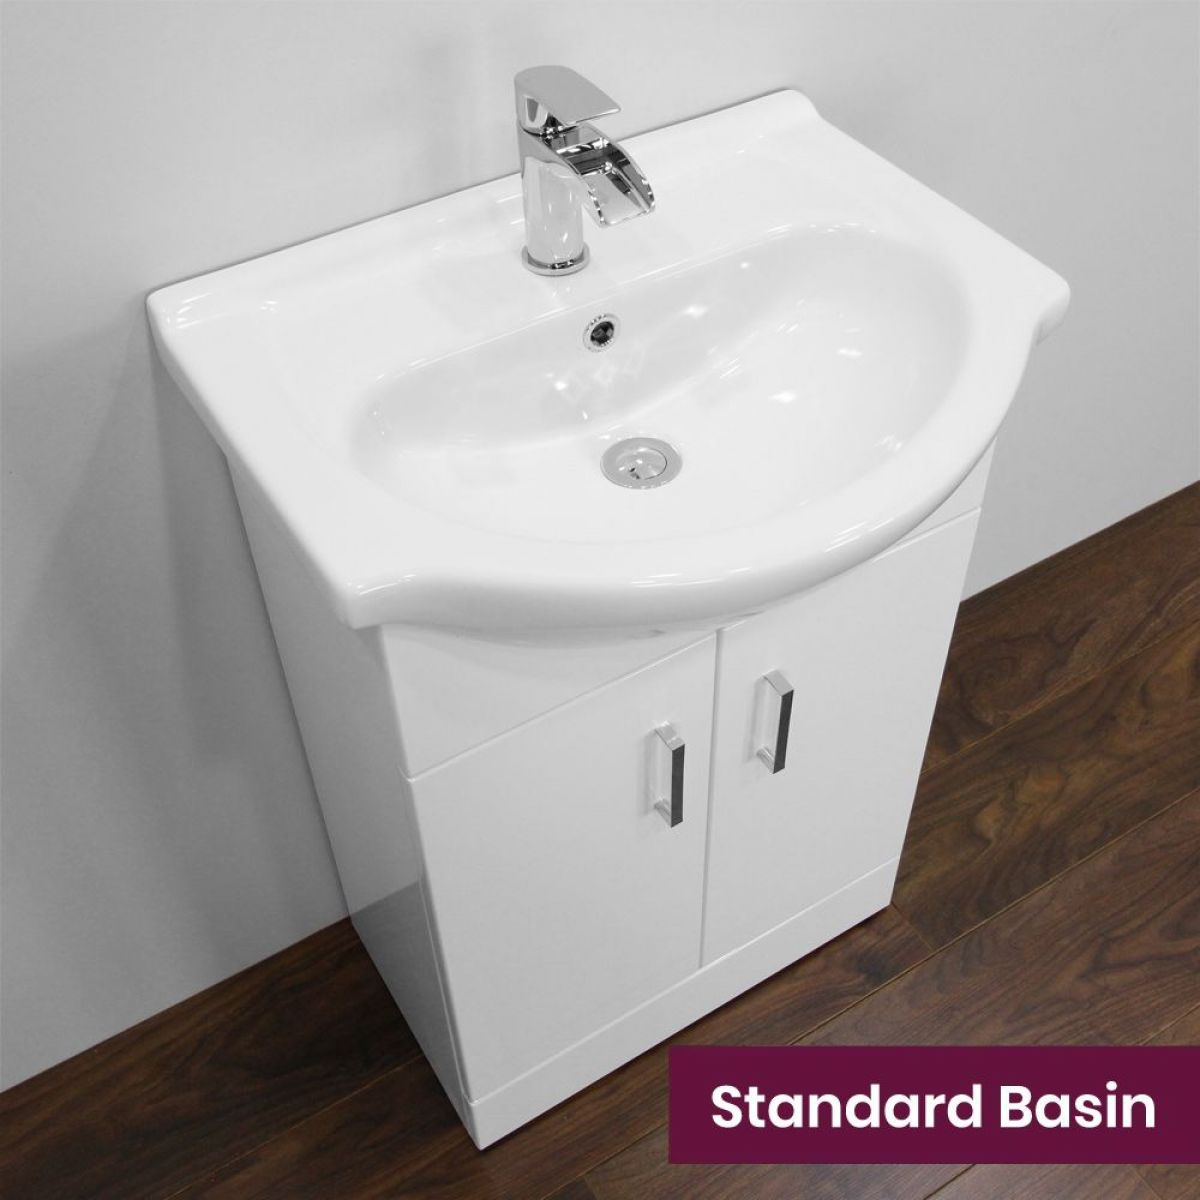 Nuie High Gloss White Vanity Unit with Standard Basin